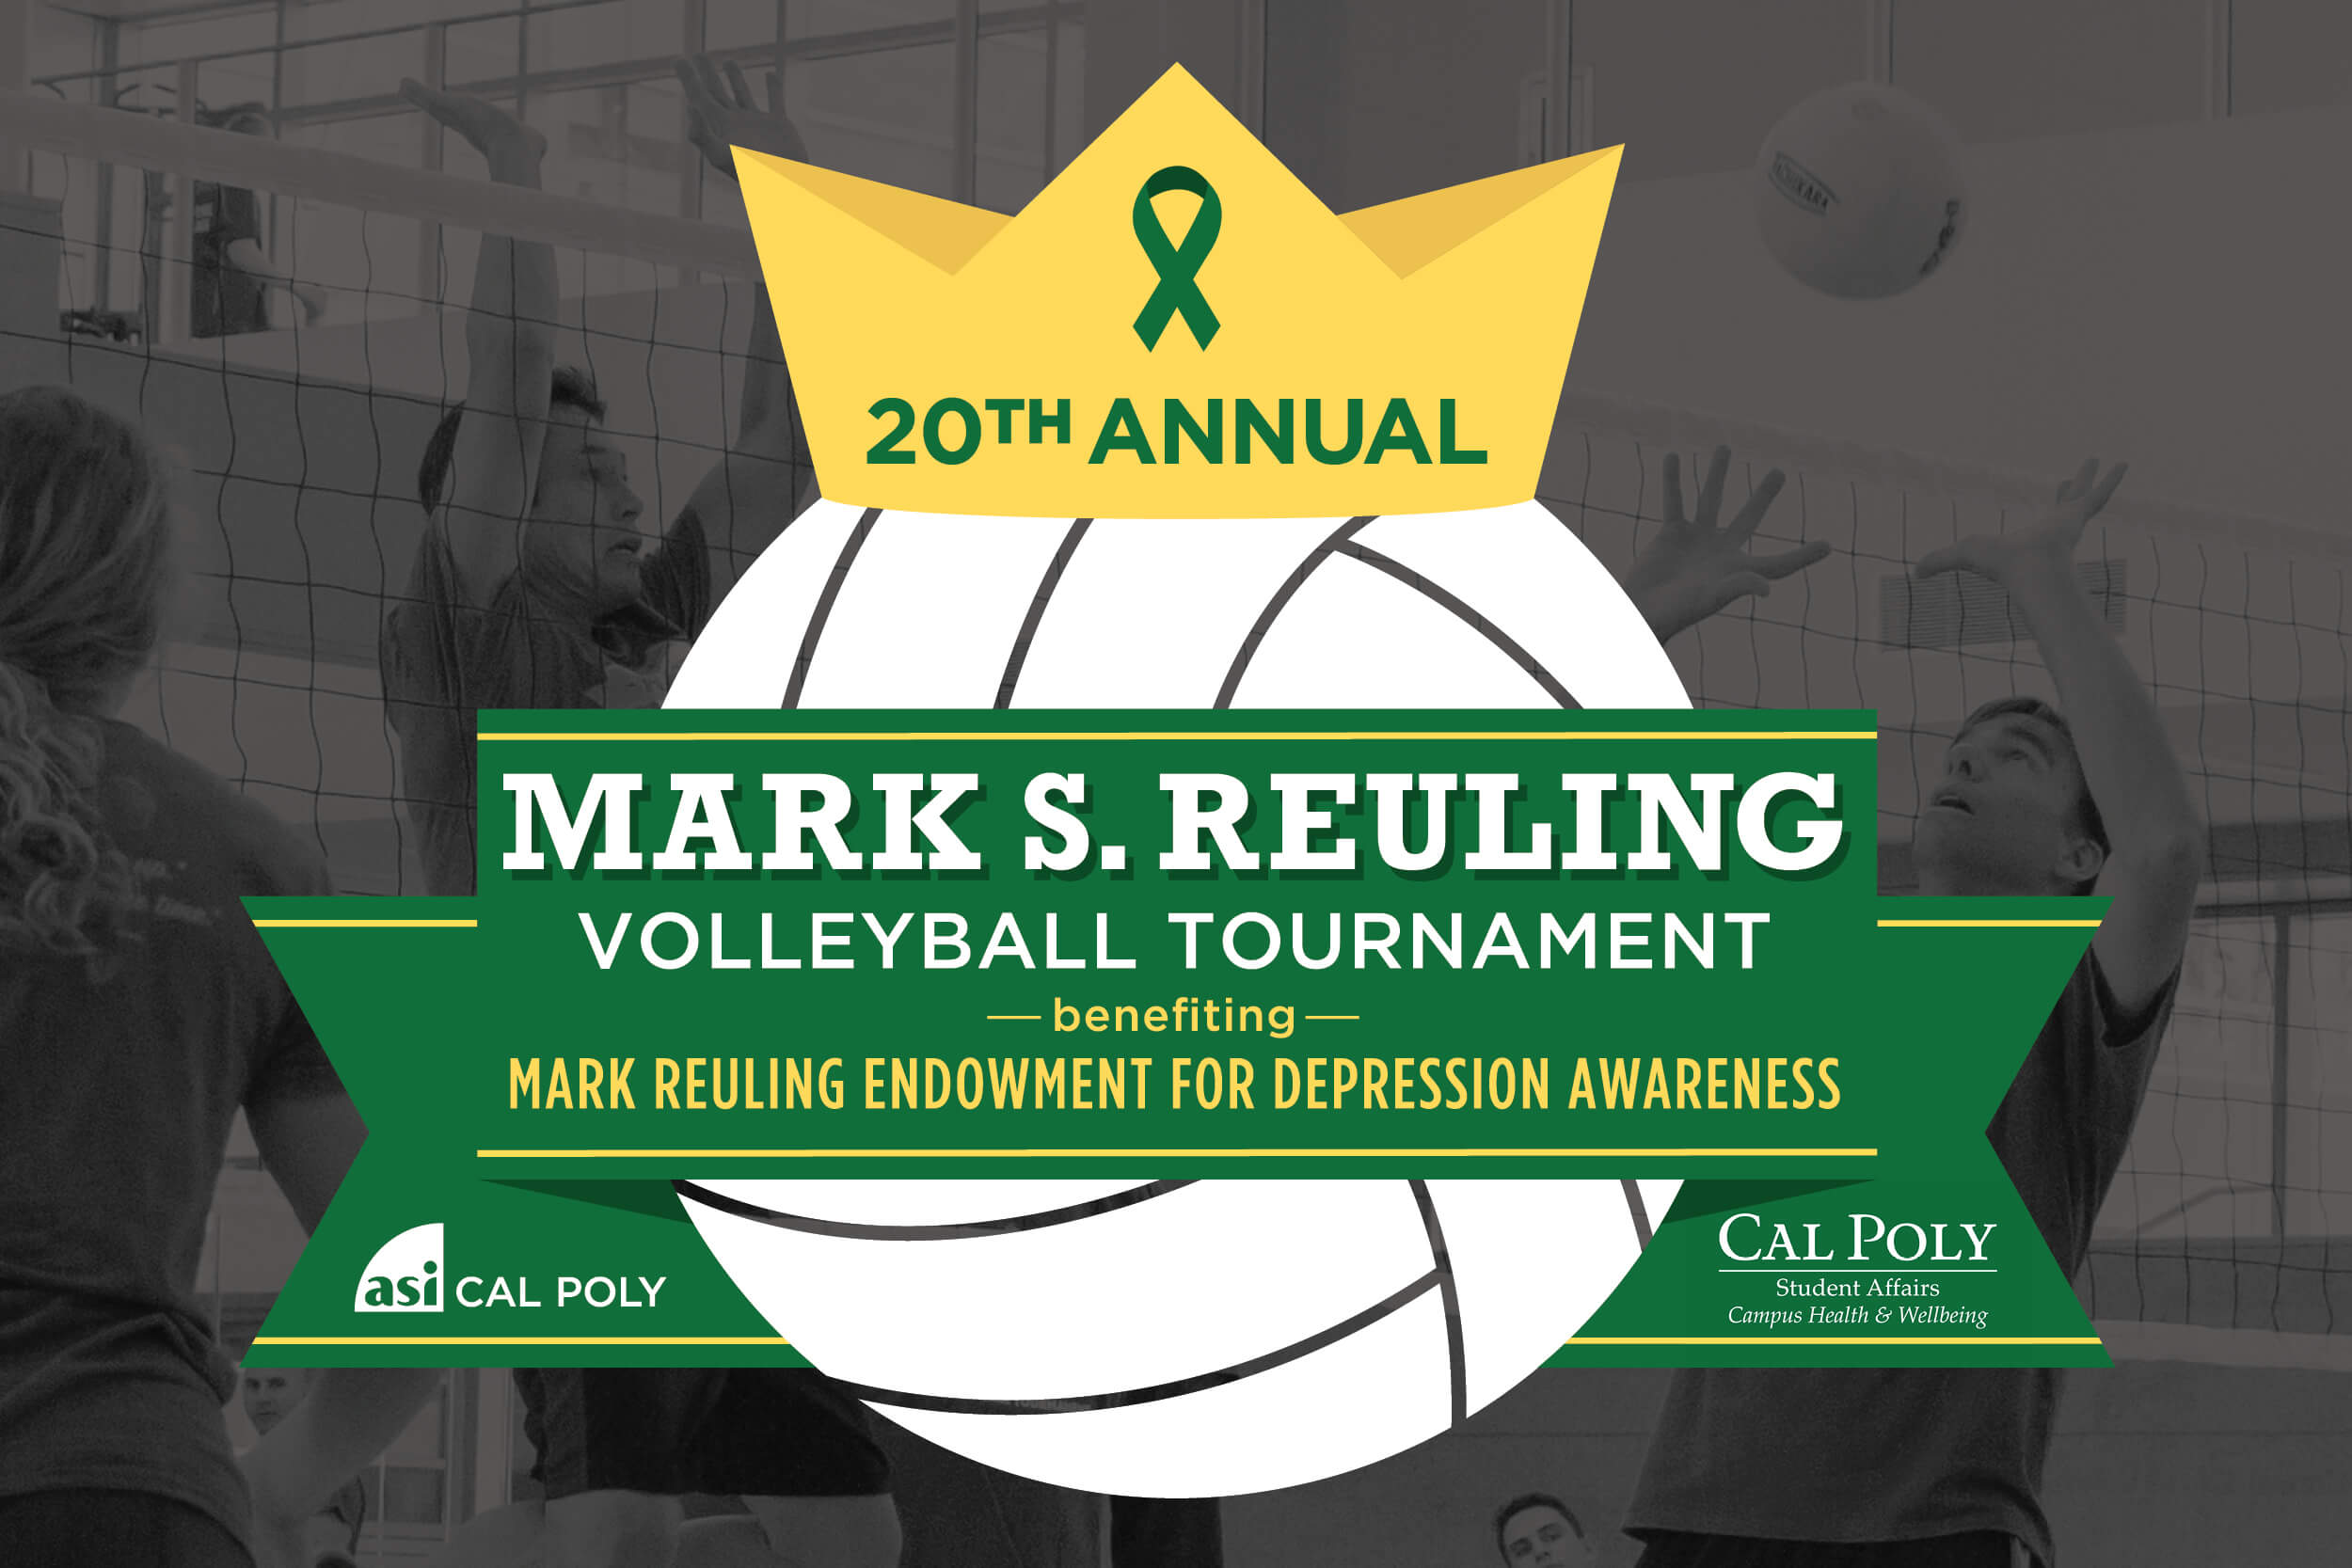 20th annual Mark S. Reuling Volleyball Tournament benefiting Mark Reuling Endowment for depression awareness